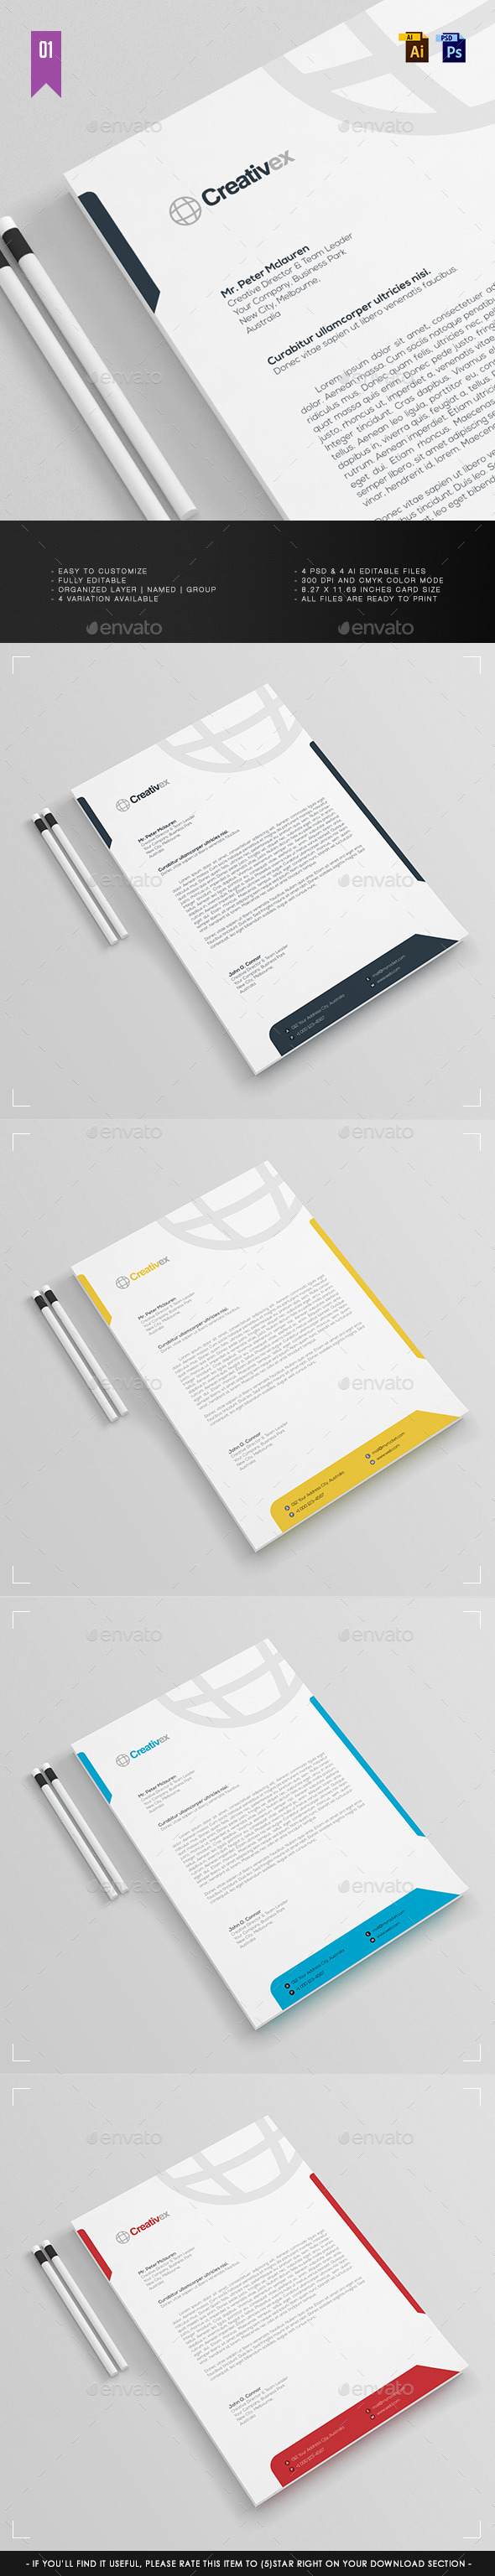 A4 - Business Letterhead V.001 - Stationery Print Templates